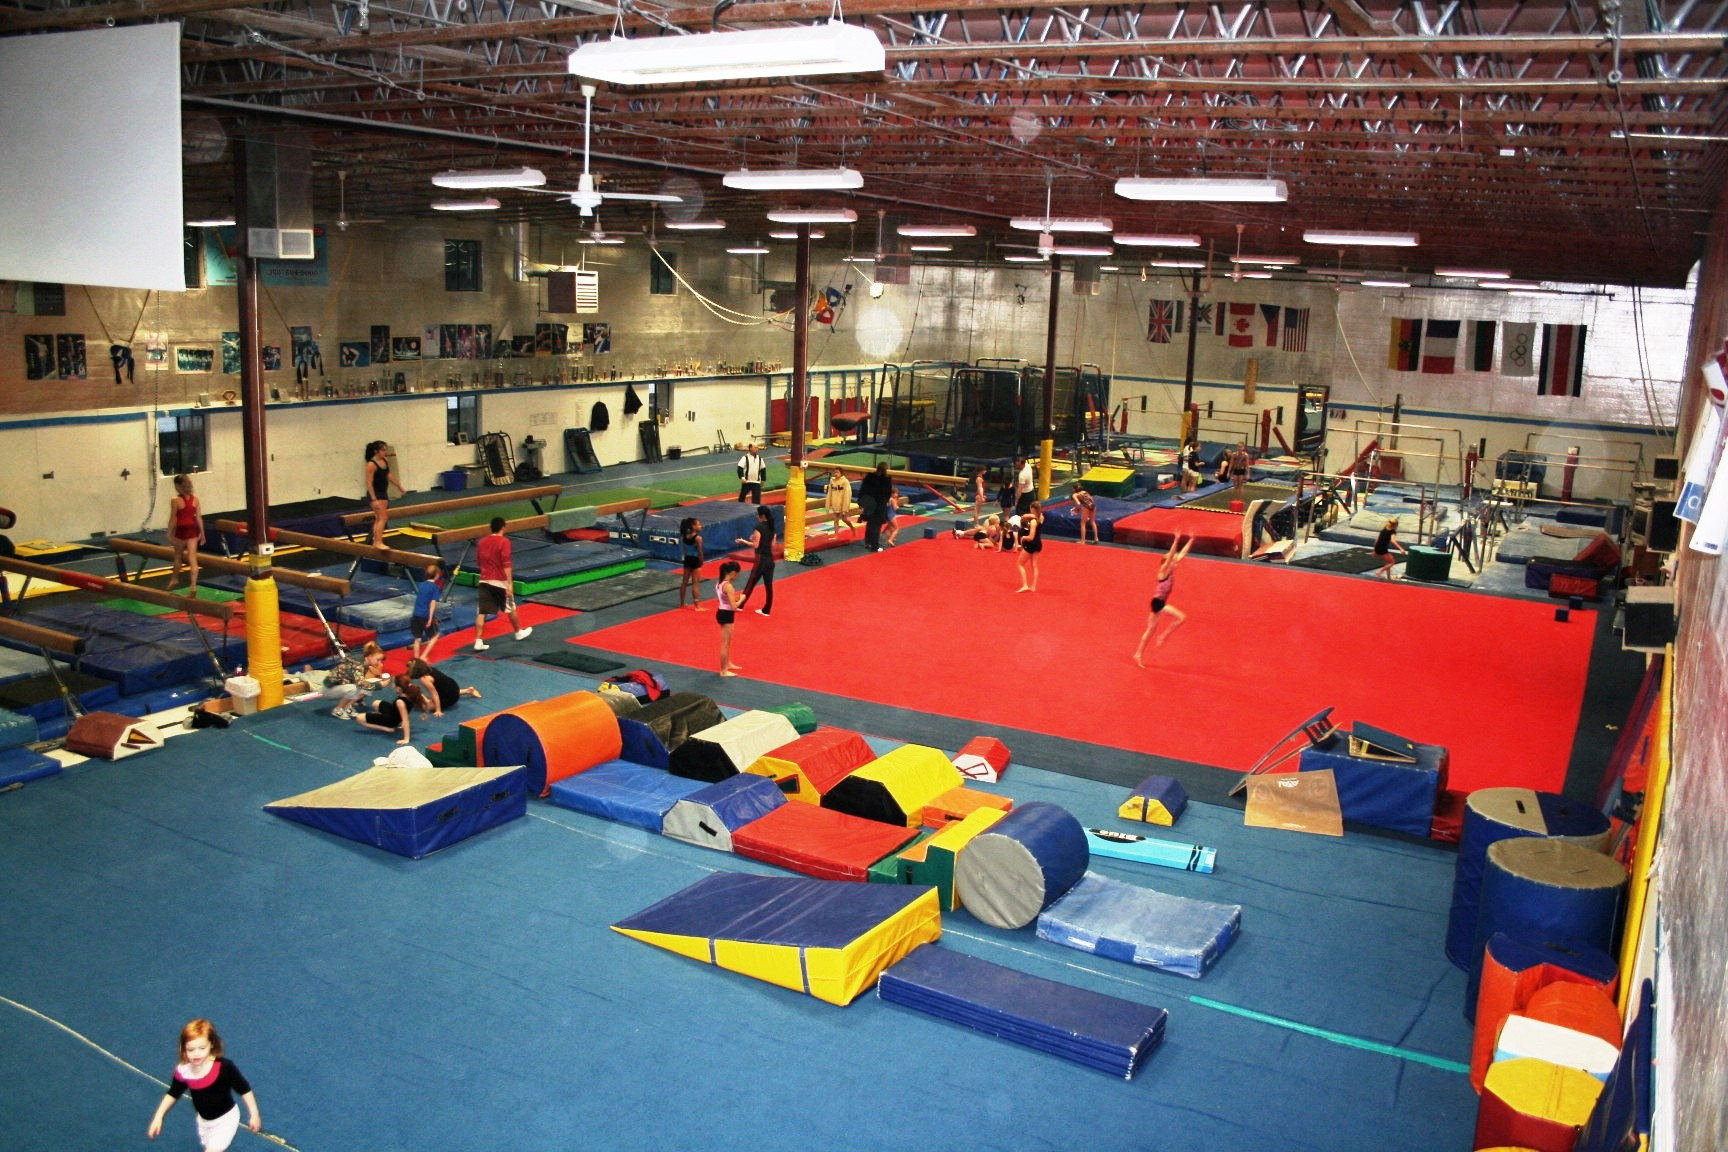 Naydenov Gymnastics Fun Center